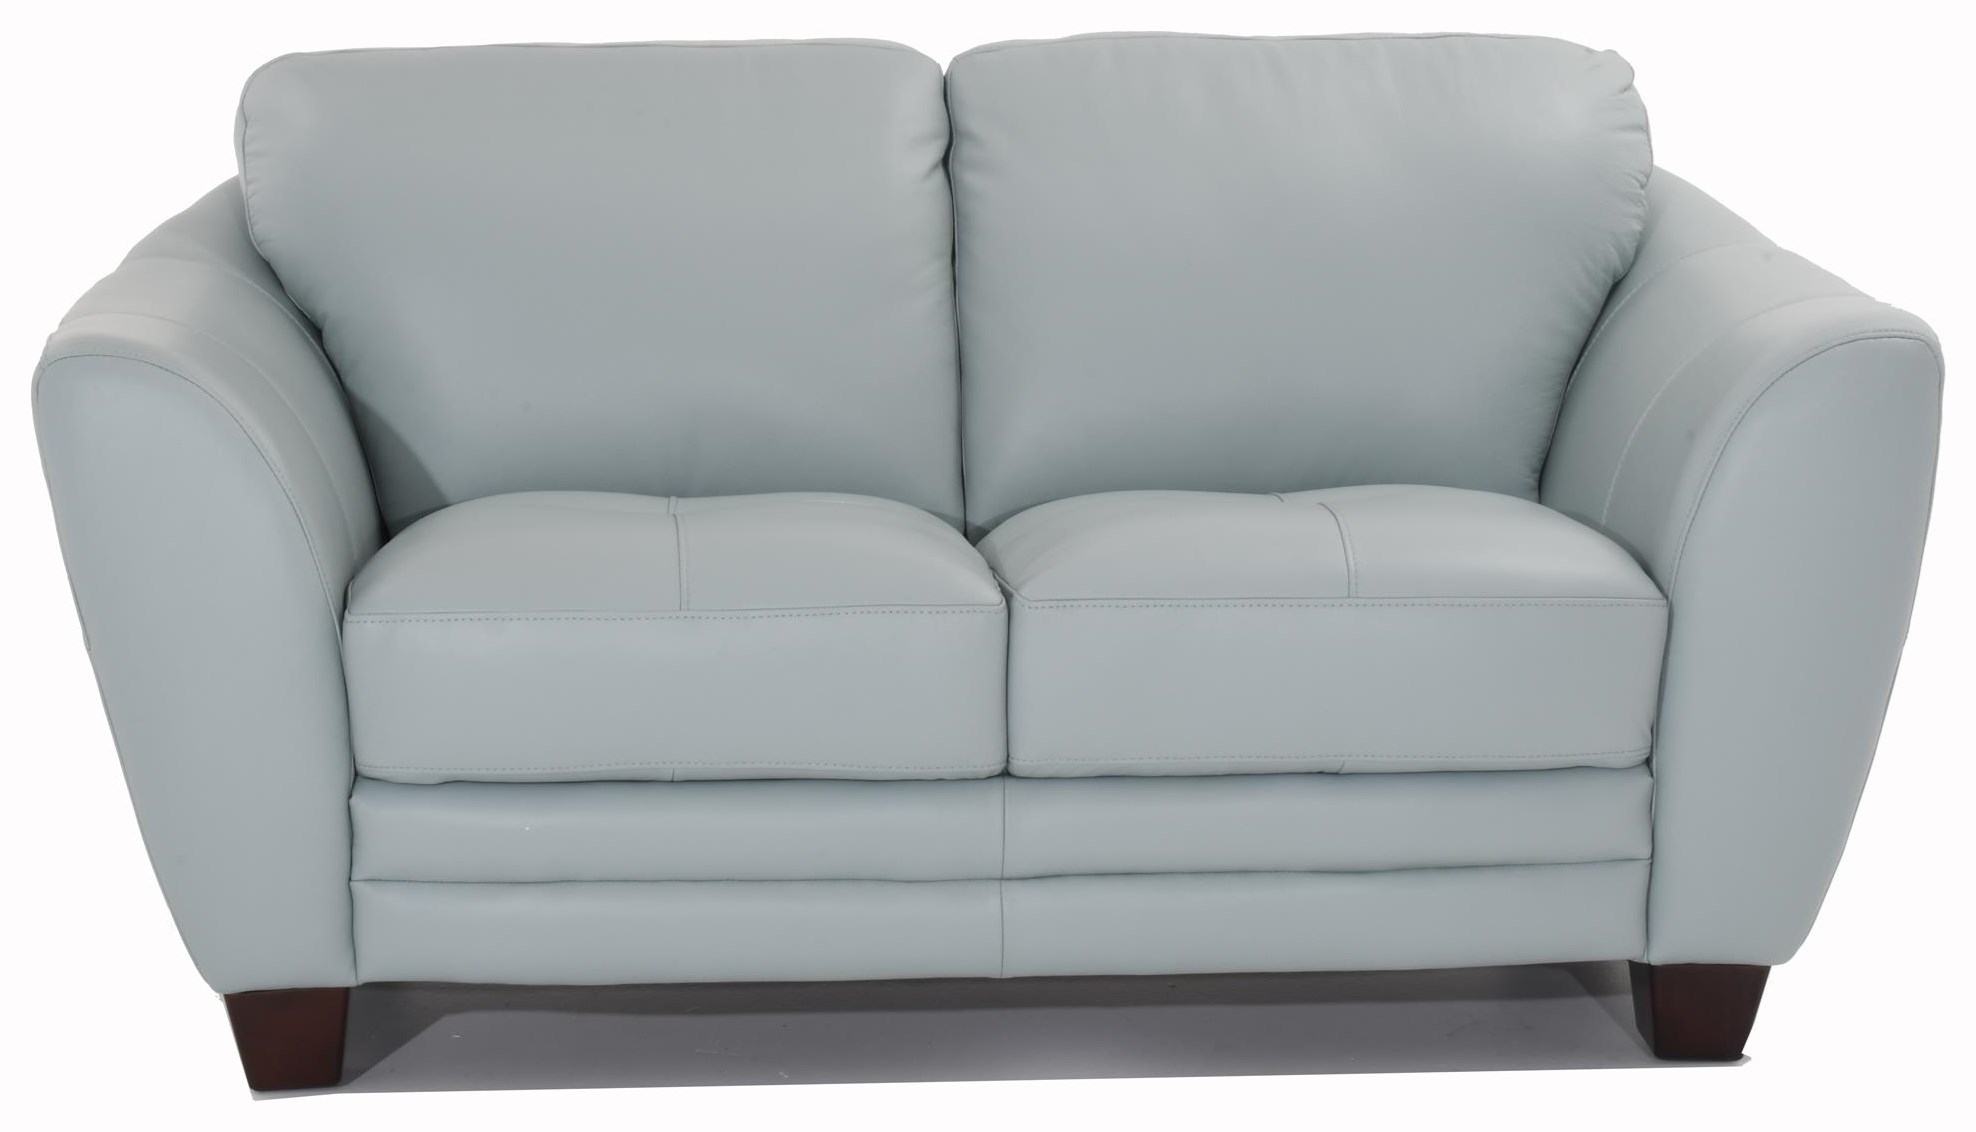 8511 Leather Loveseat by Futura Leather at Baer's Furniture